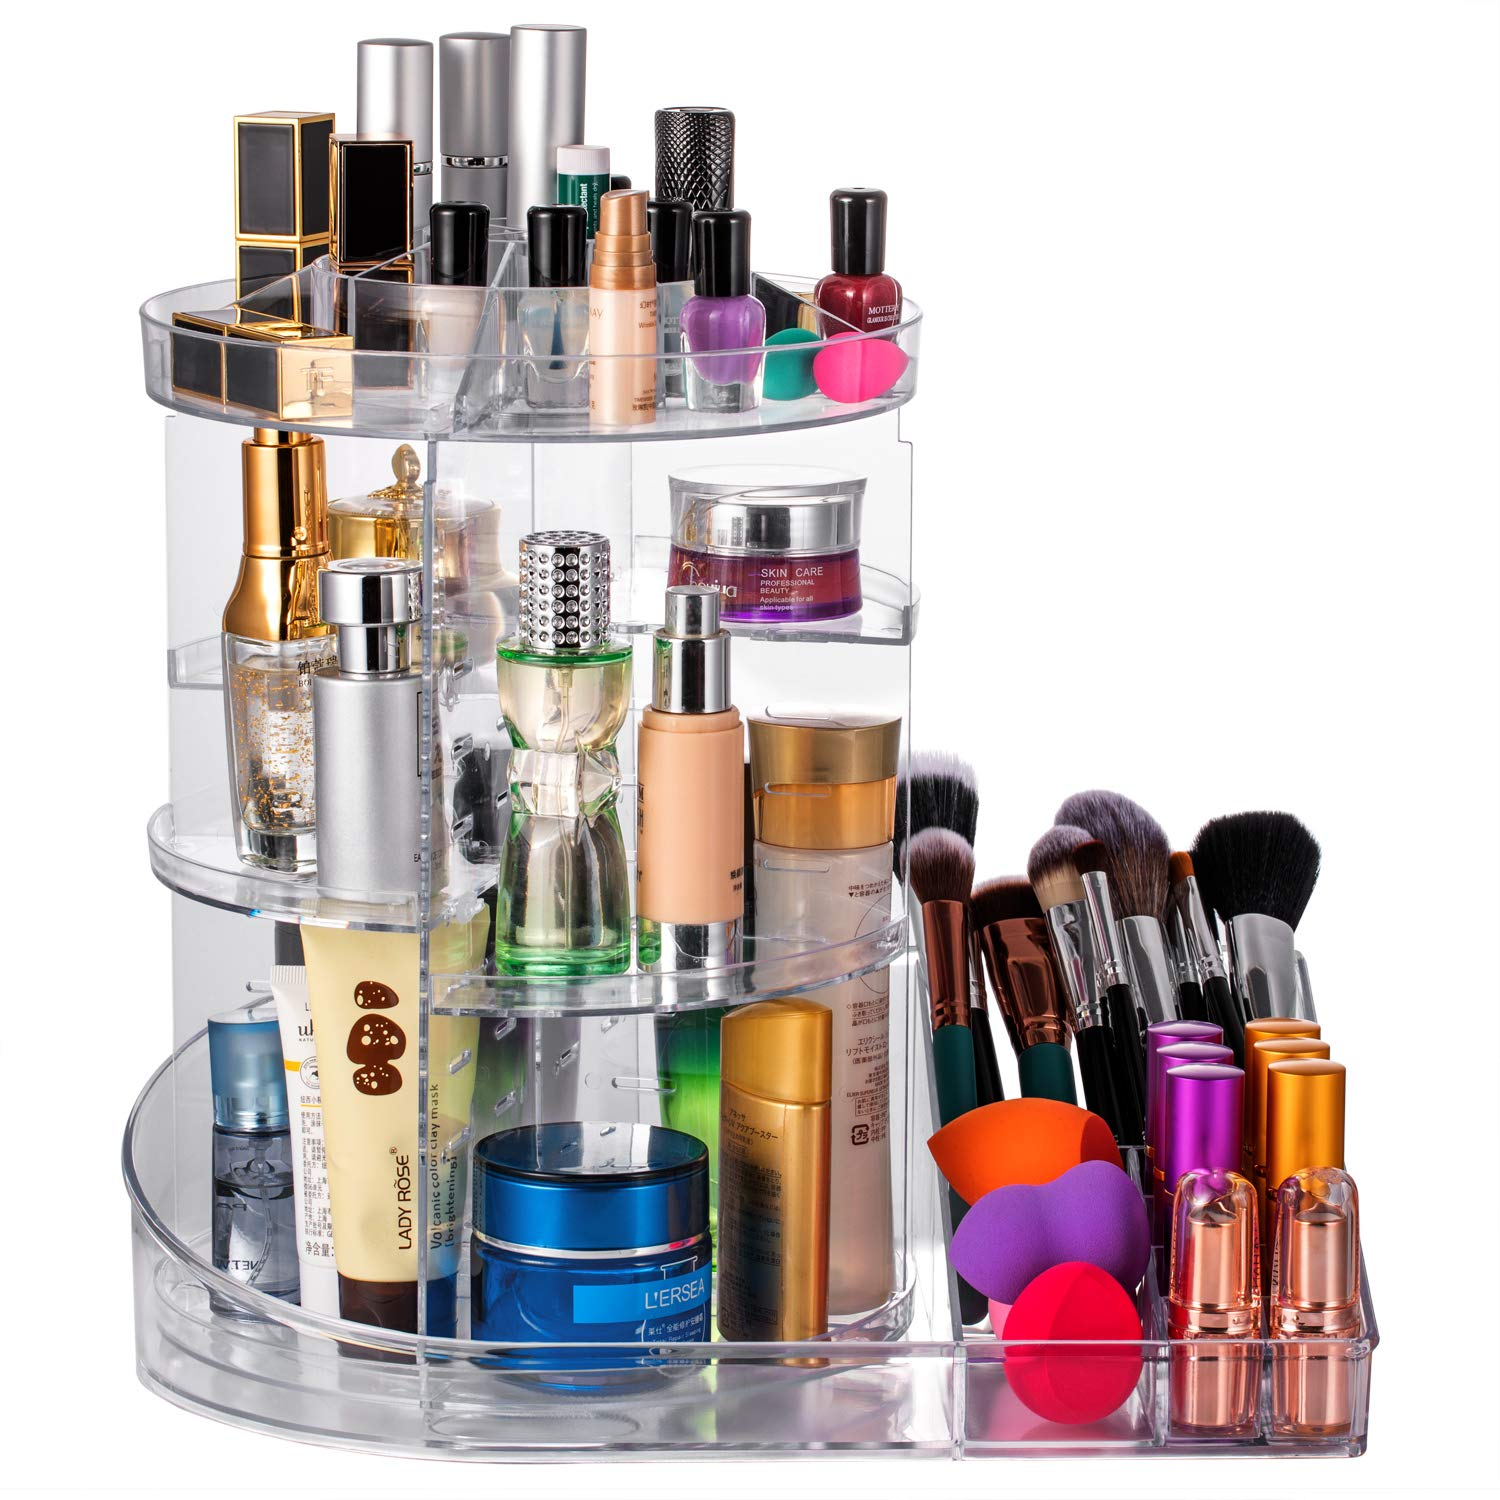 DreamGenius Makeup Organizer 360-Degree Rotating Adjustable Carousel with Tray for Cosmetics Multi-Function Acrylic Makeup Storage Black